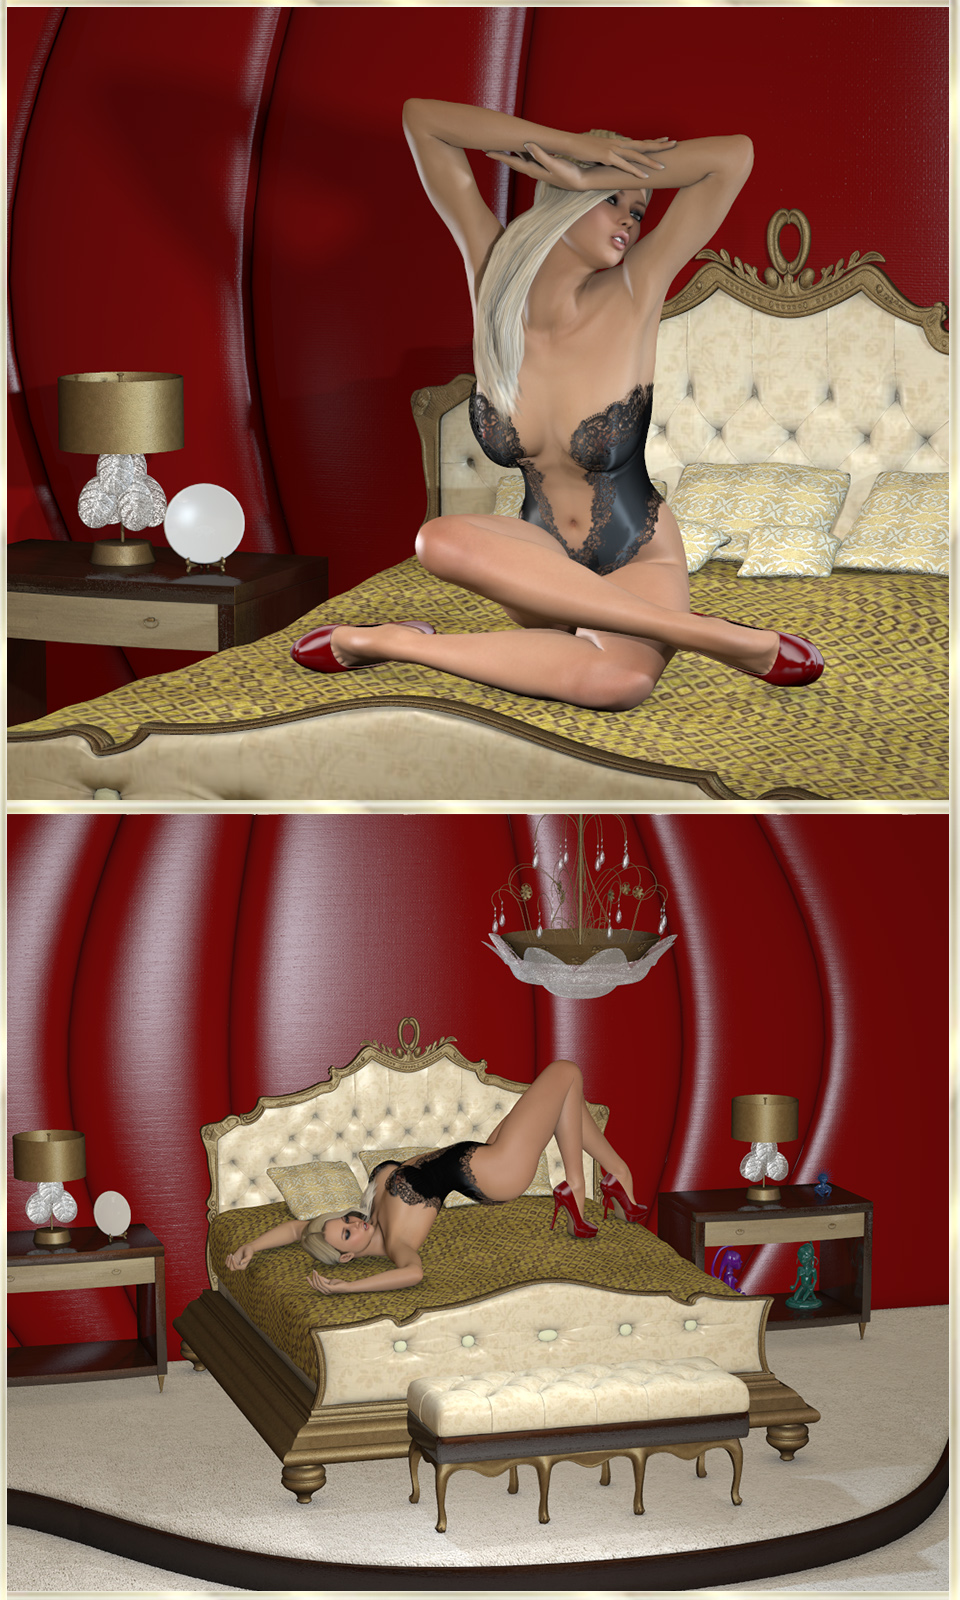 Z luxuriant bedroom poses 3d figure essentials 3d models for Z luxuriant bedroom poses